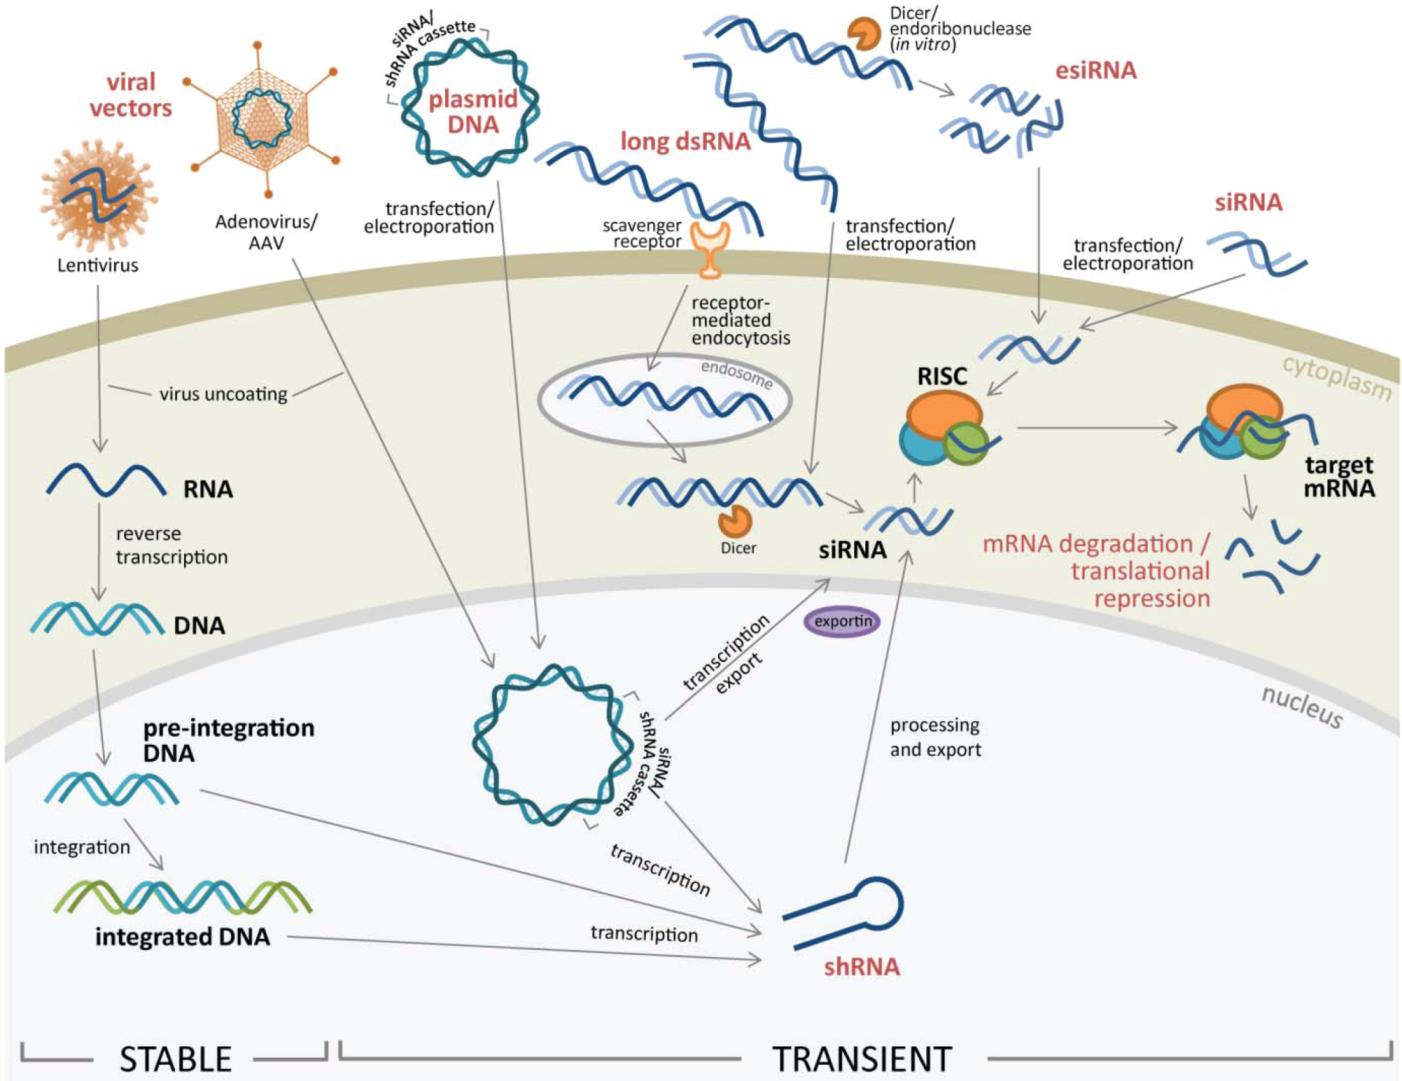 rnai screening and gene knockdown Large-scale gene silencing using rnai high-throughput screening (hts) has  opened an exciting frontier to systematically study gene function in mammalian.